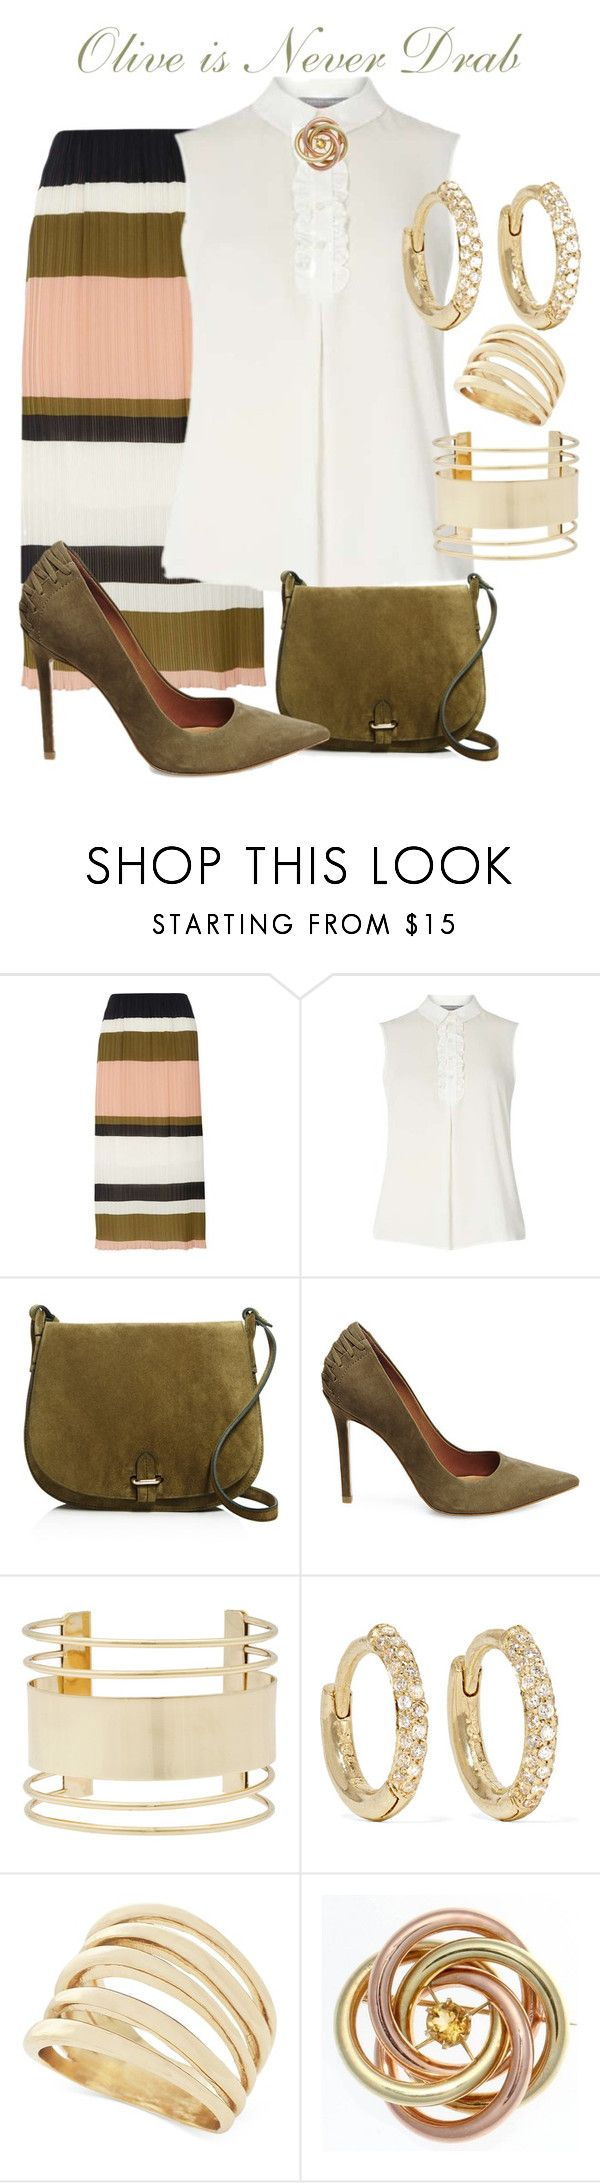 """""""Olive is Never Drab"""" by sommer-reign ❤ liked on Polyvore featuring Dorothy Perkins, Céline Lefébure, Steve Madden, Eloquii, Jennifer Meyer Jewelry, BCBGeneration and Tiffany & Co."""